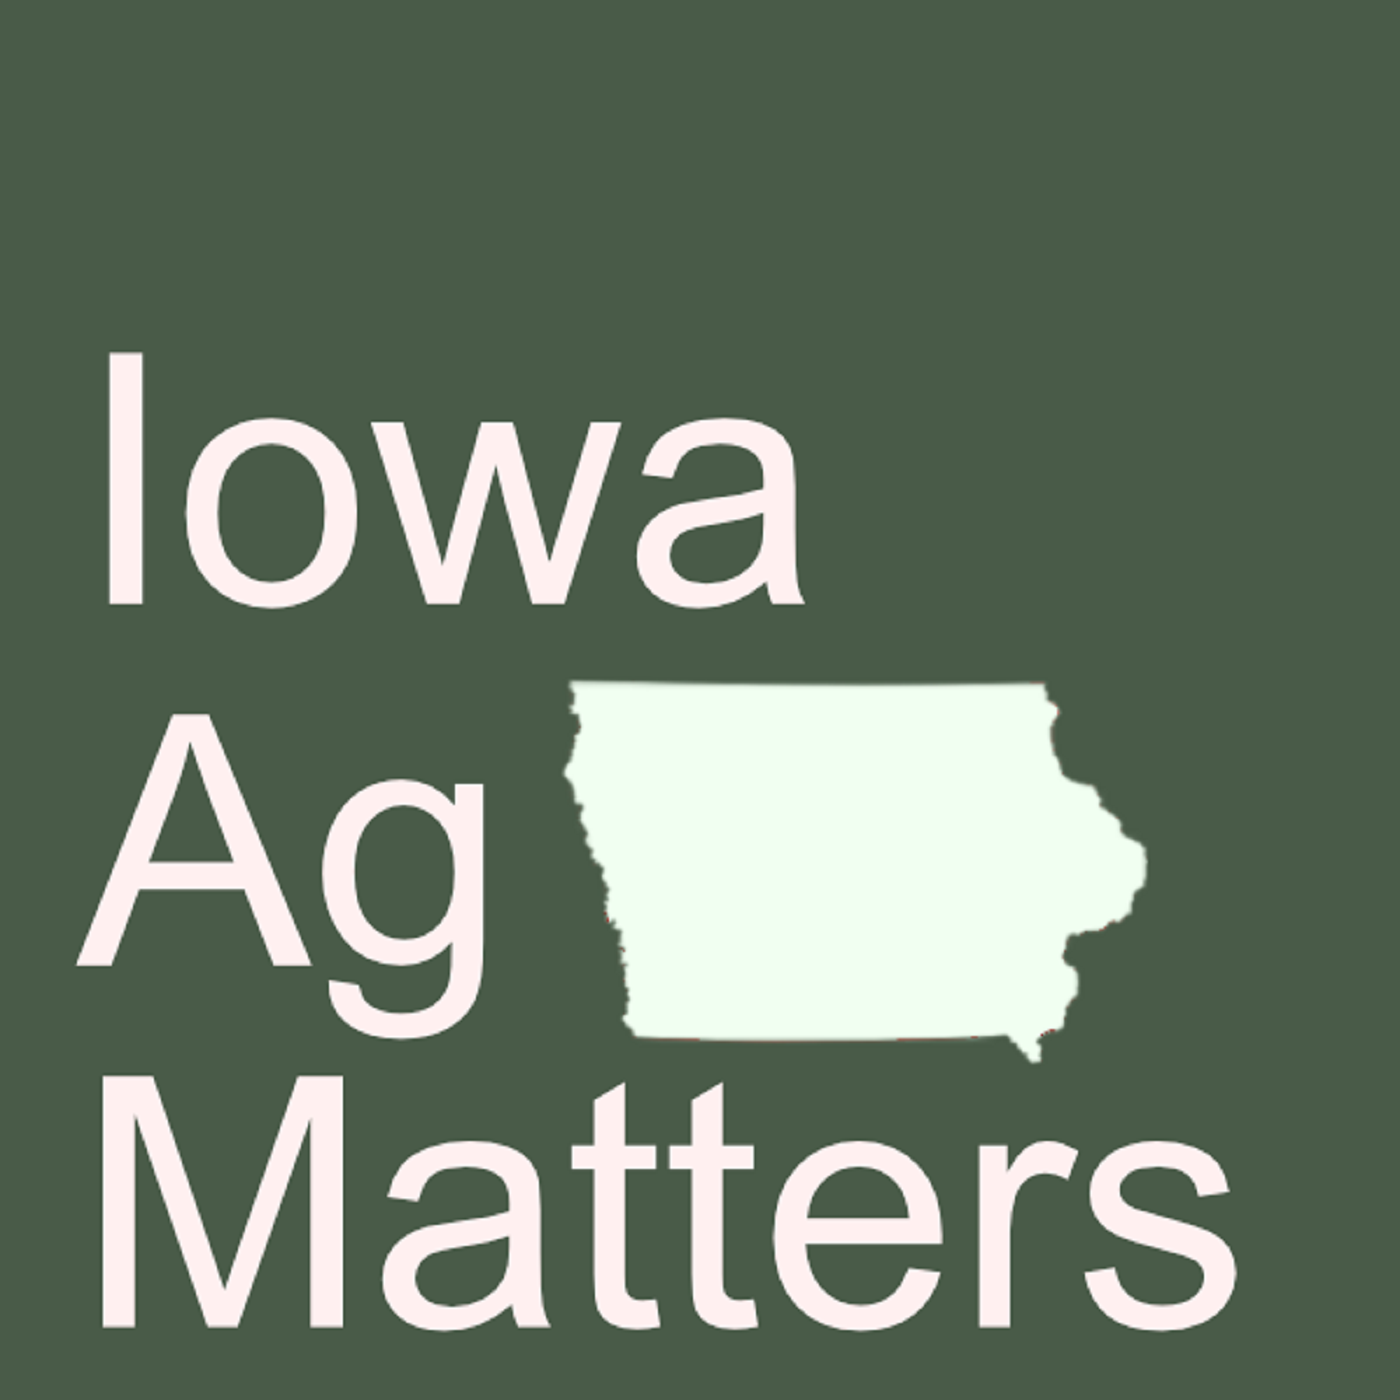 Weekend Ag Matters: January 26, 2019